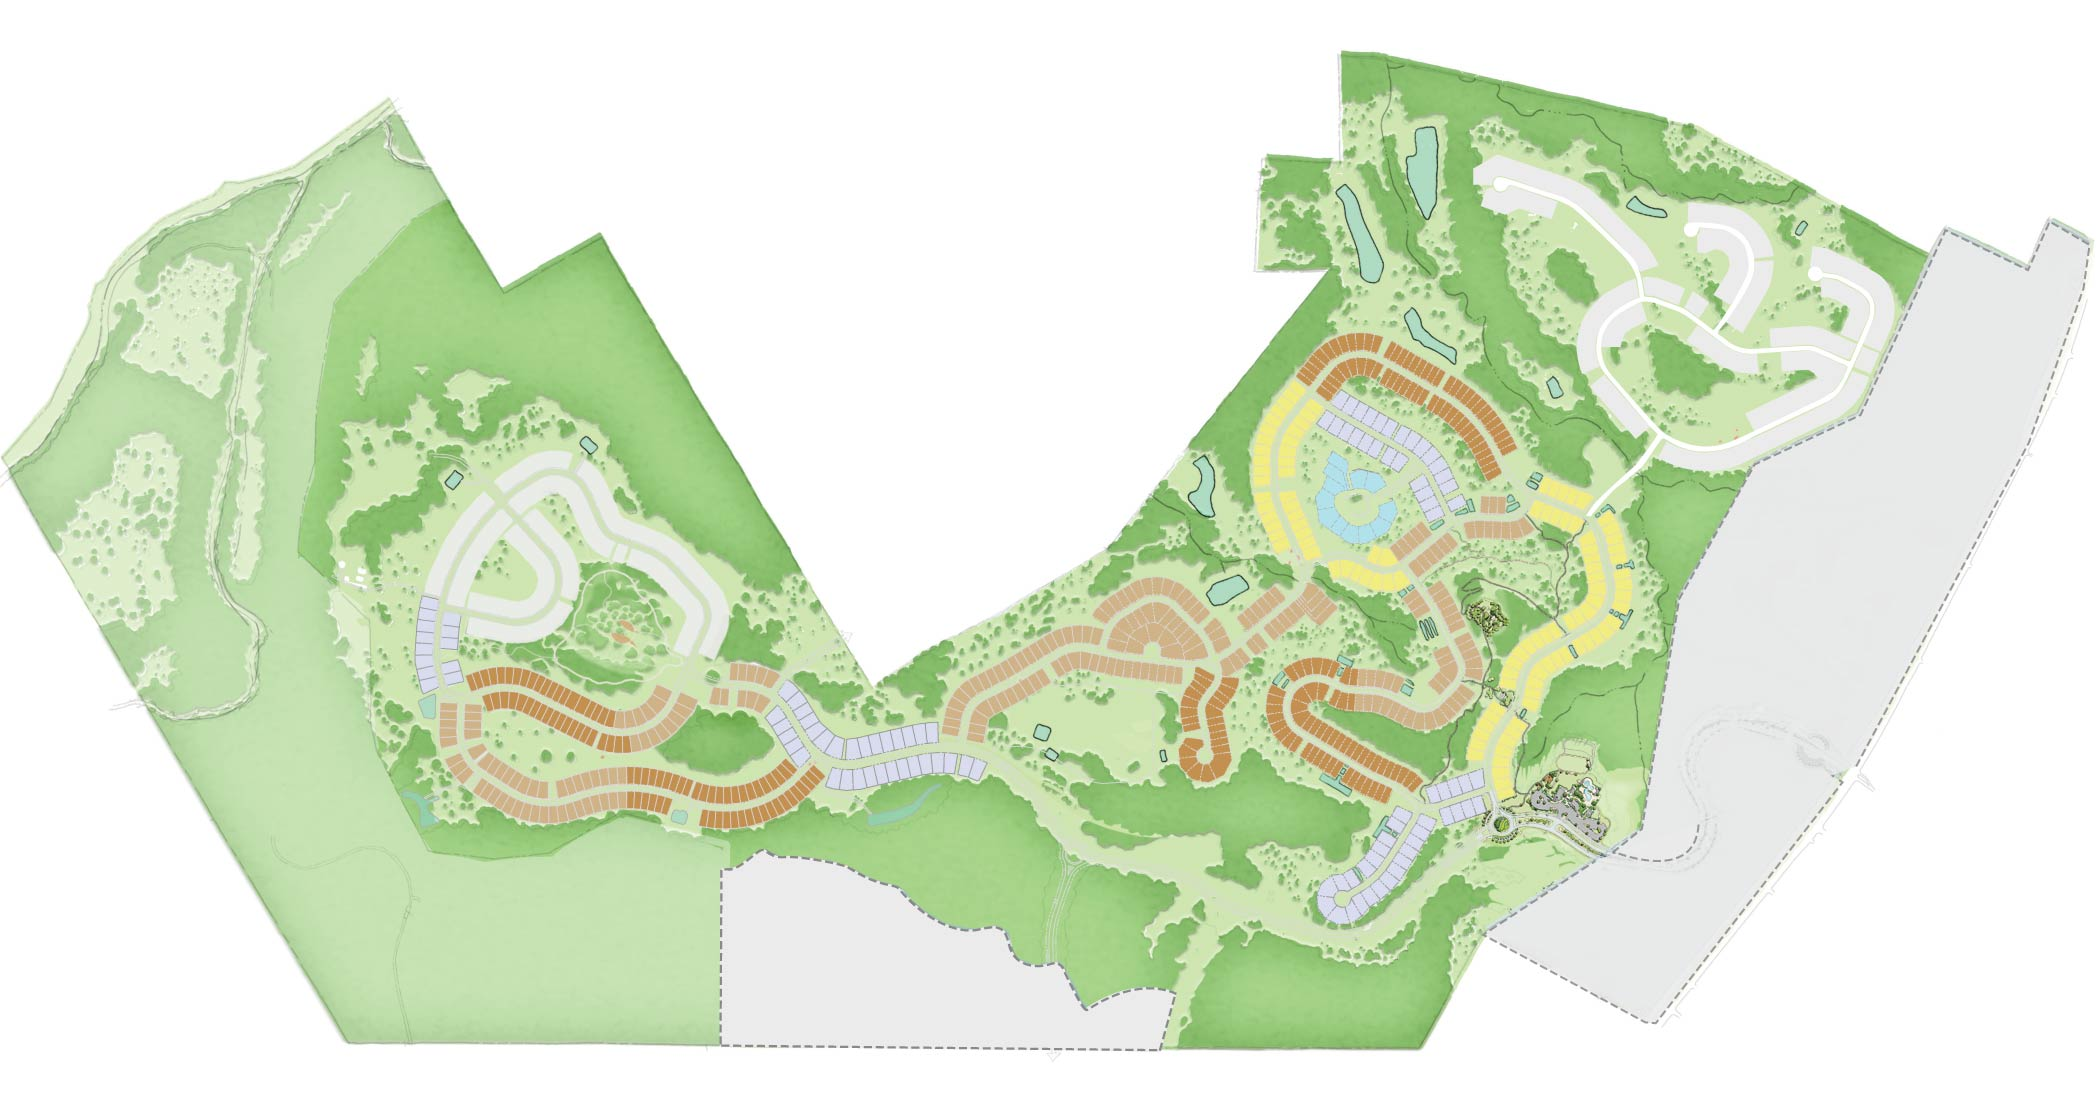 Headwaters site plan illustrative graphic